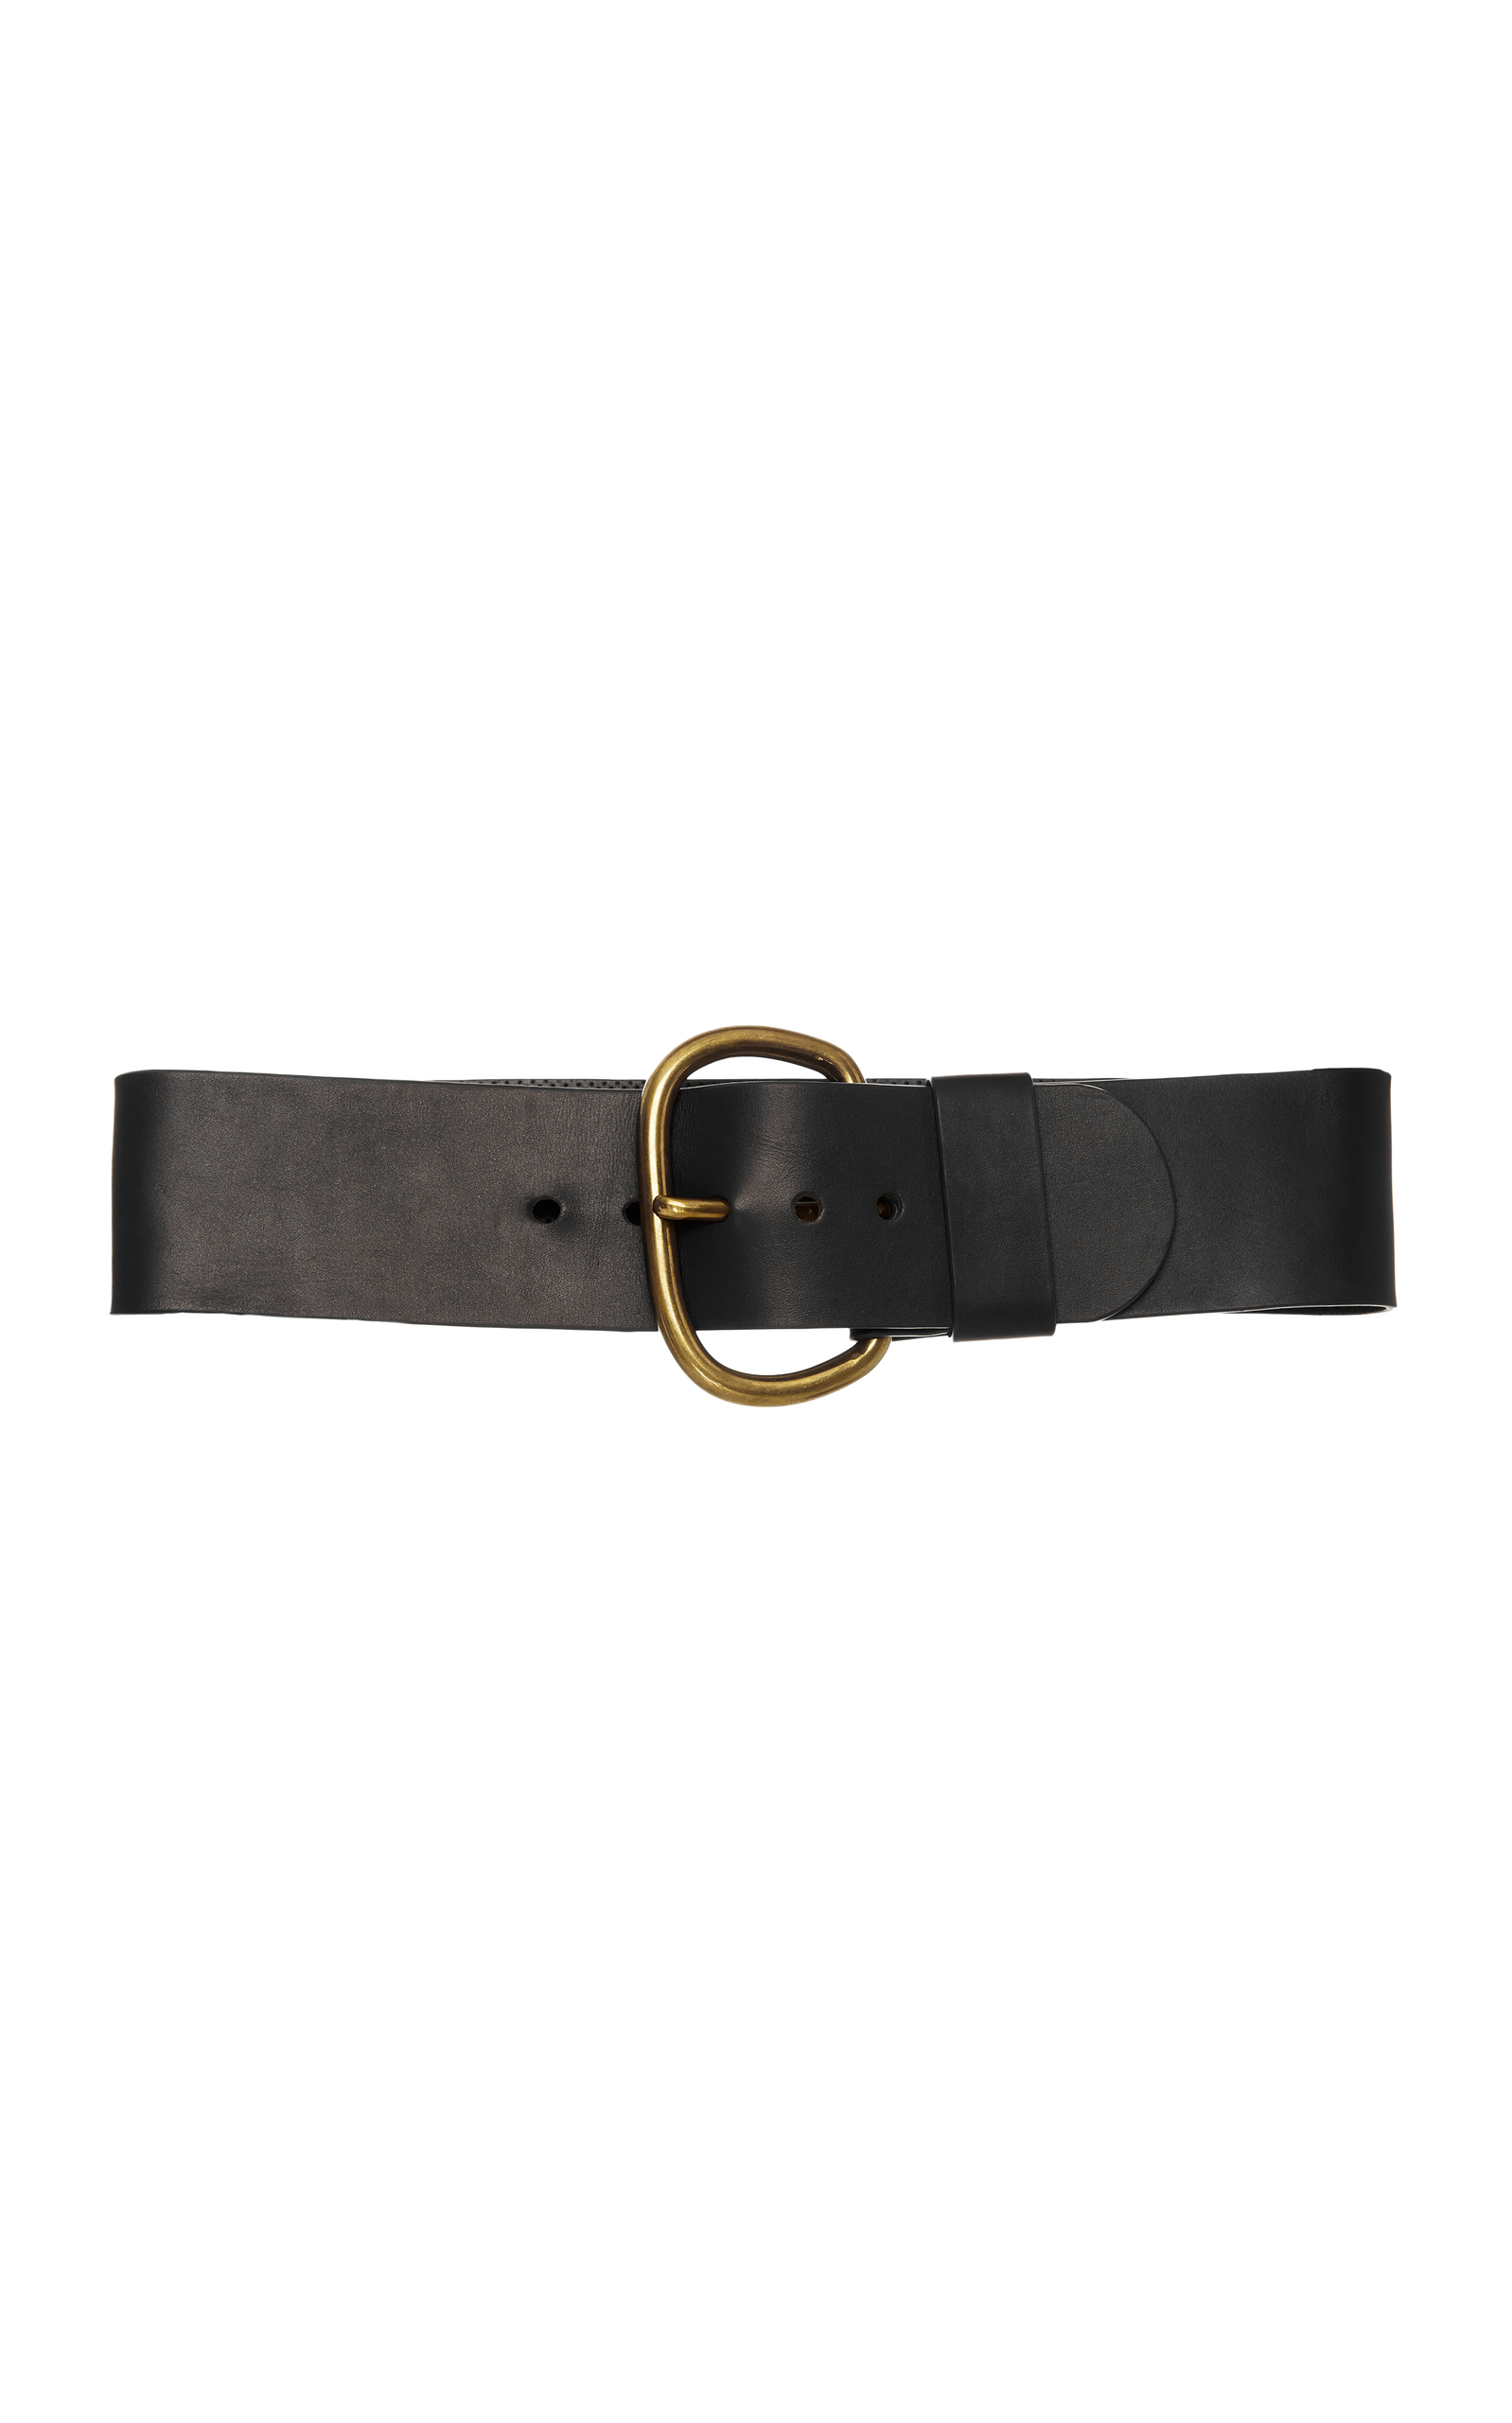 Small Leather Goods - Belts 8pm